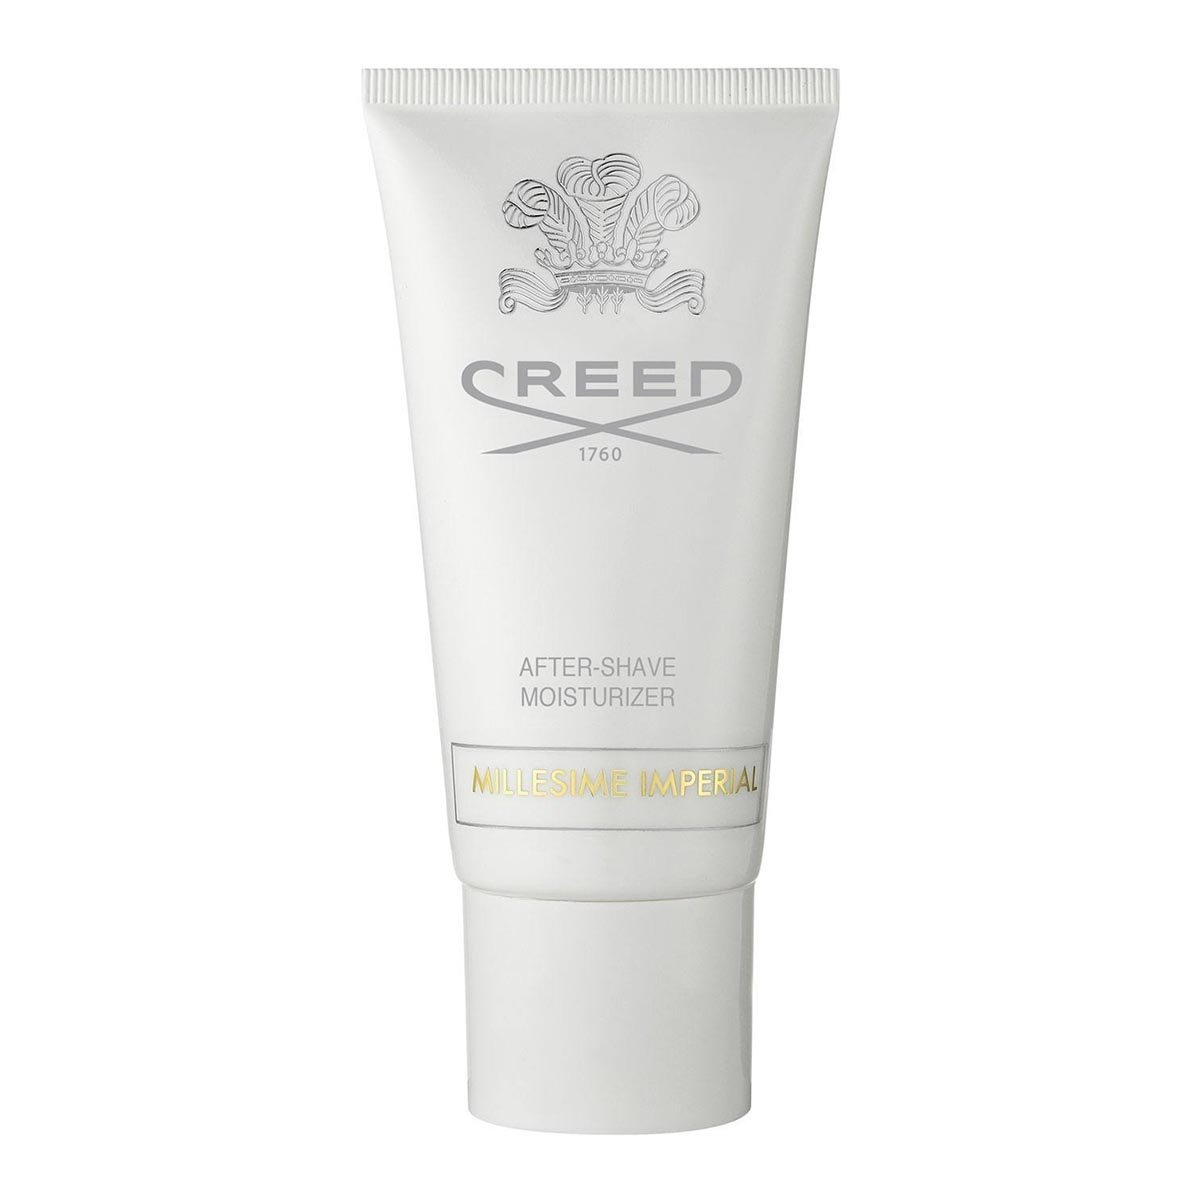 Creed 'Millesime Imperial' After-Shave Balm 2.5 oz